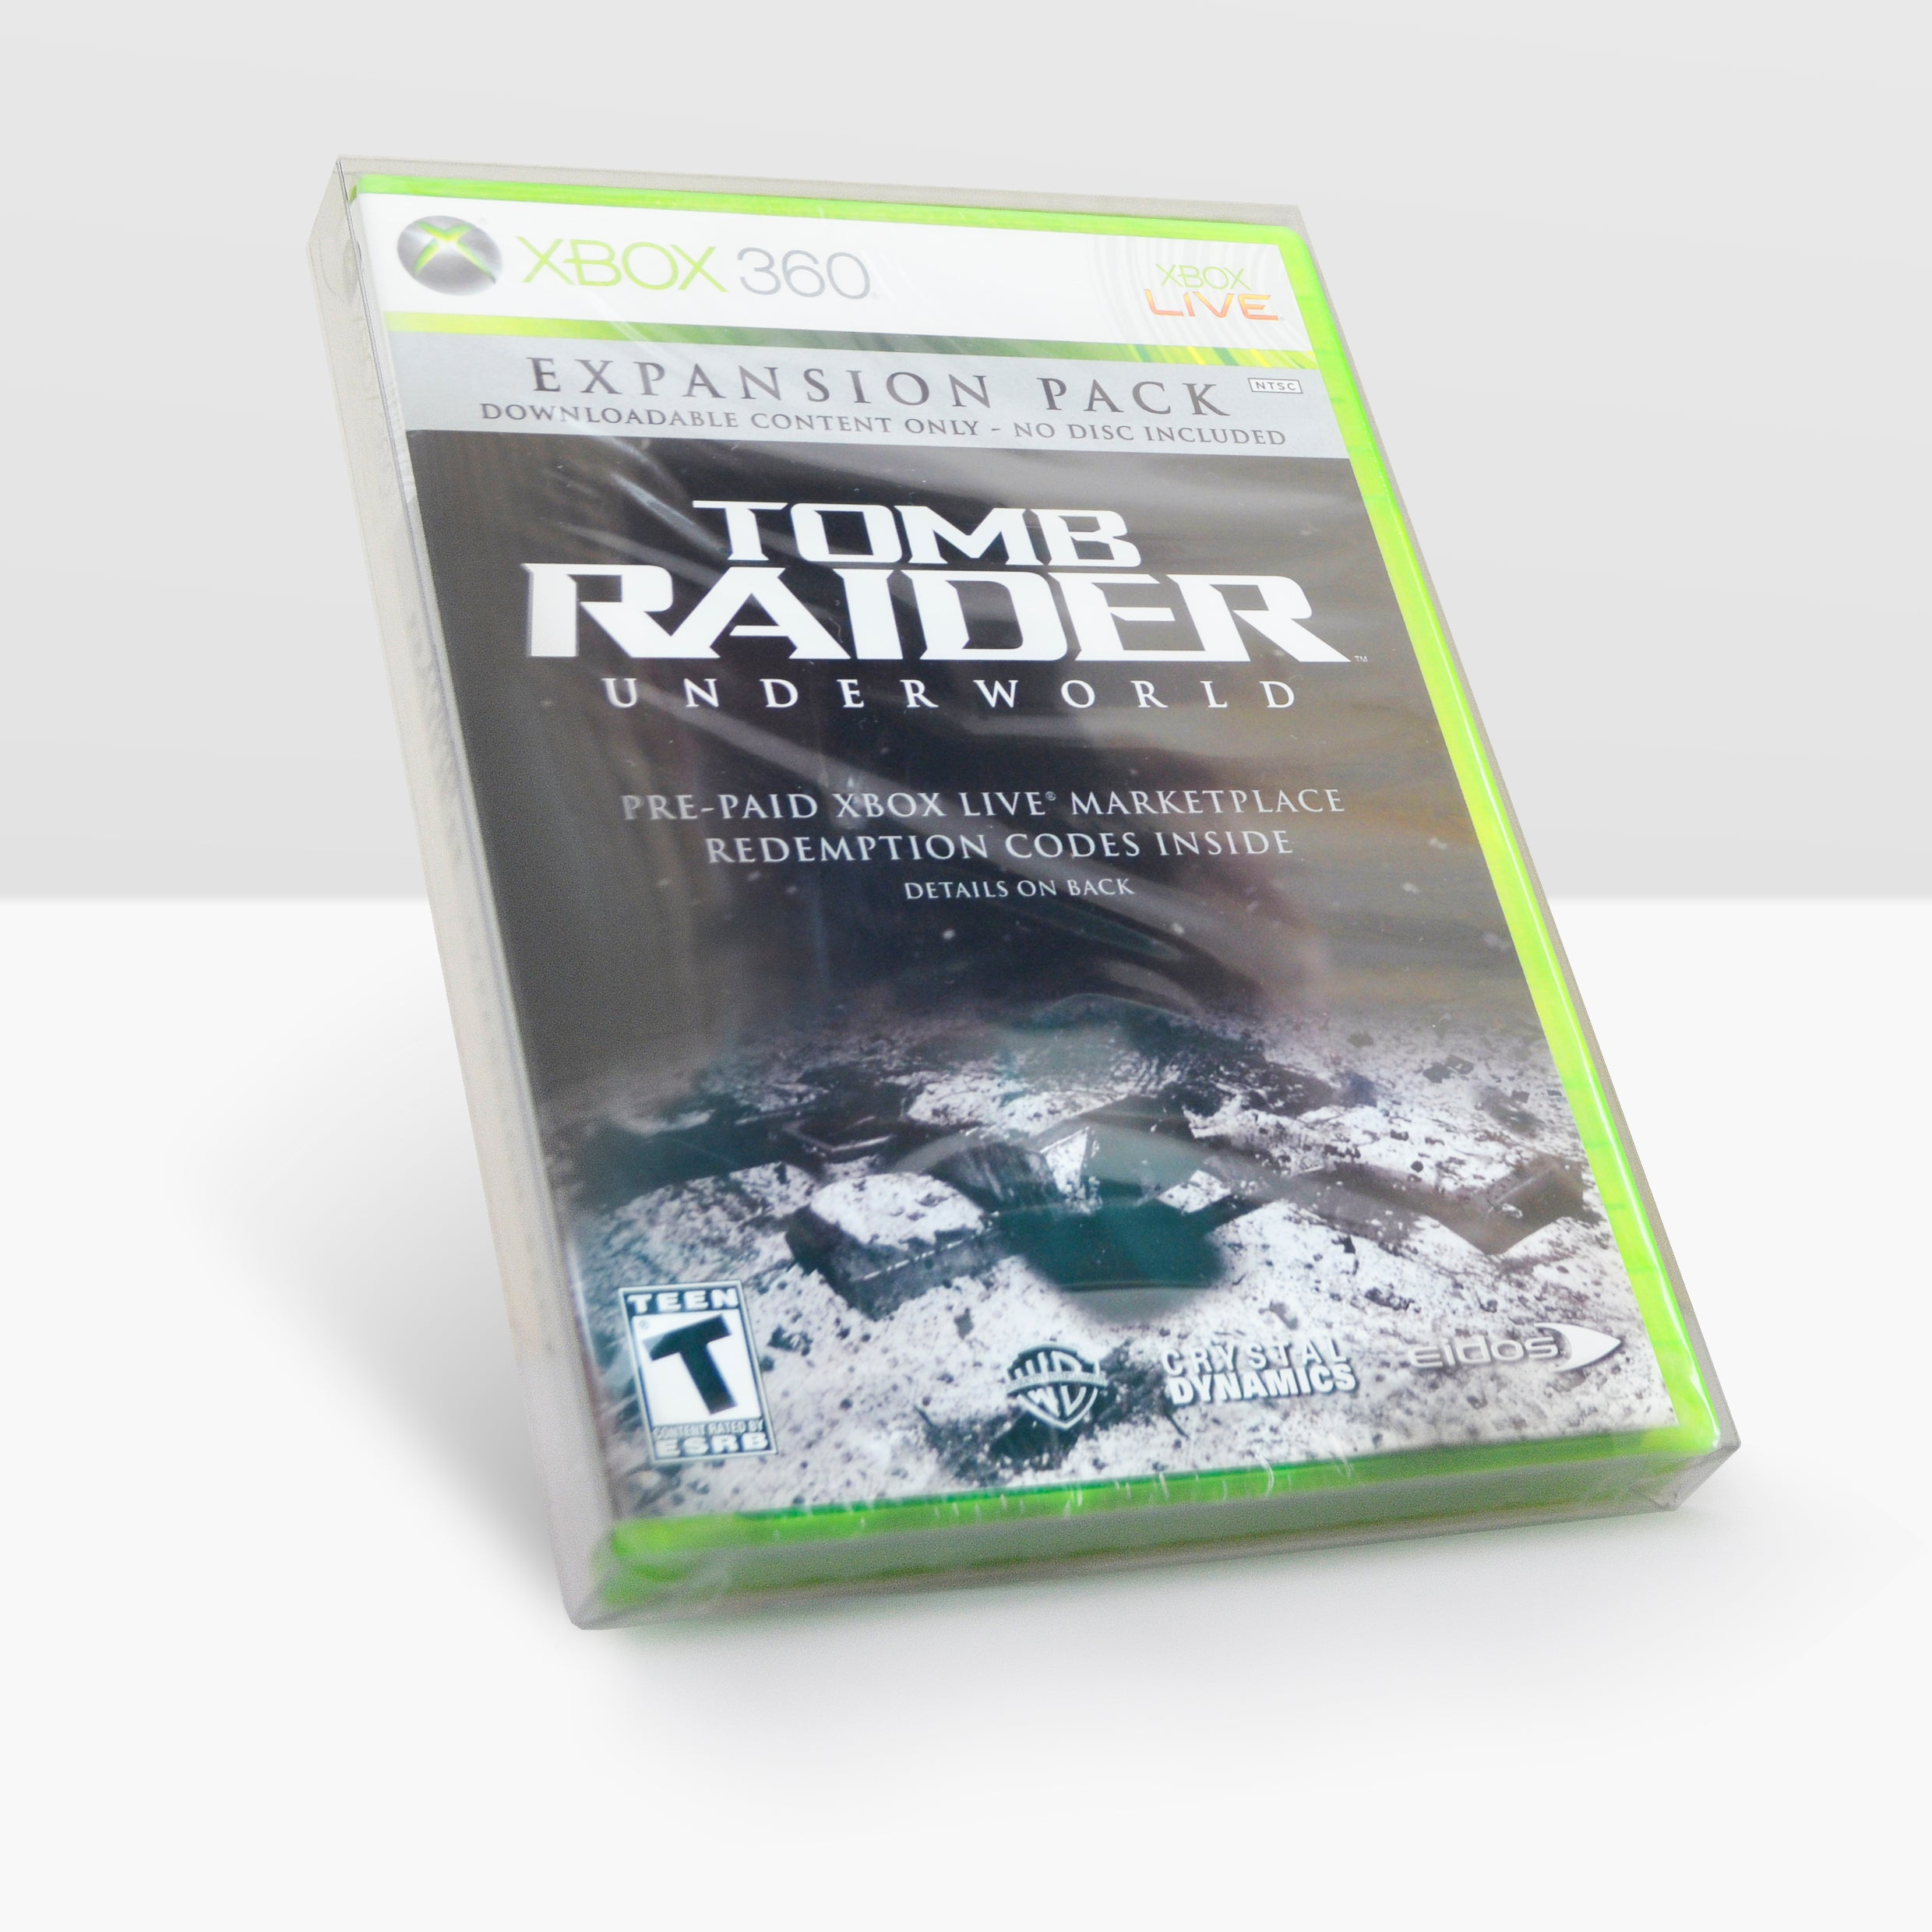 A sealed copy of an Xbox case for the Tomb Raider: Underworld expansion pack